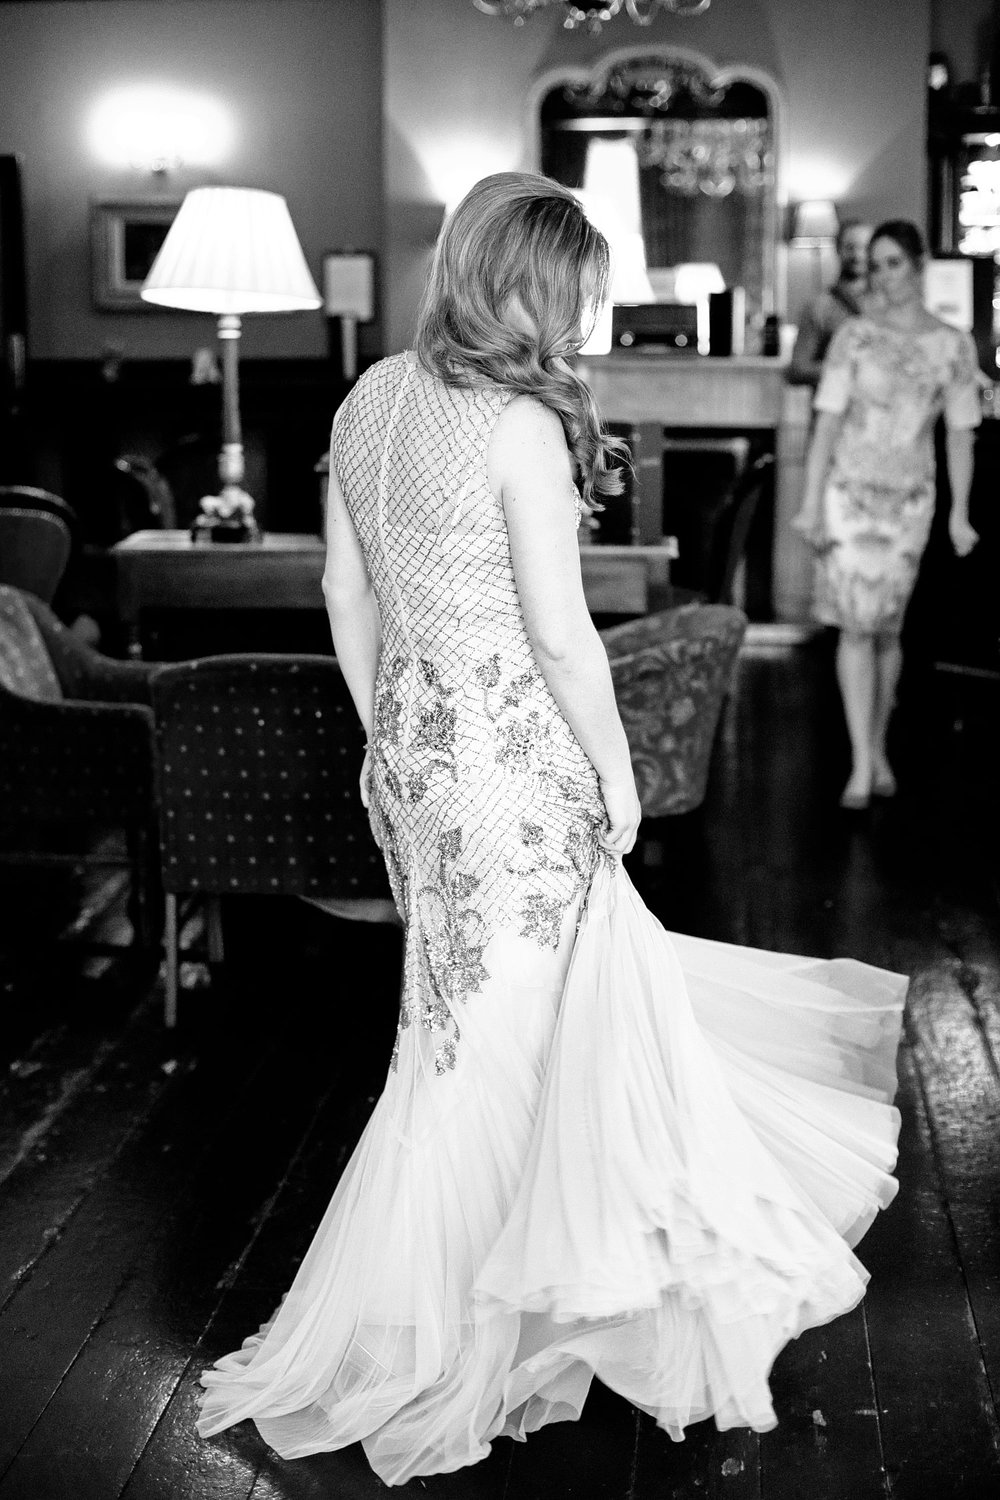 bride portrait at Fallon and Byrne wedding venue Dublin